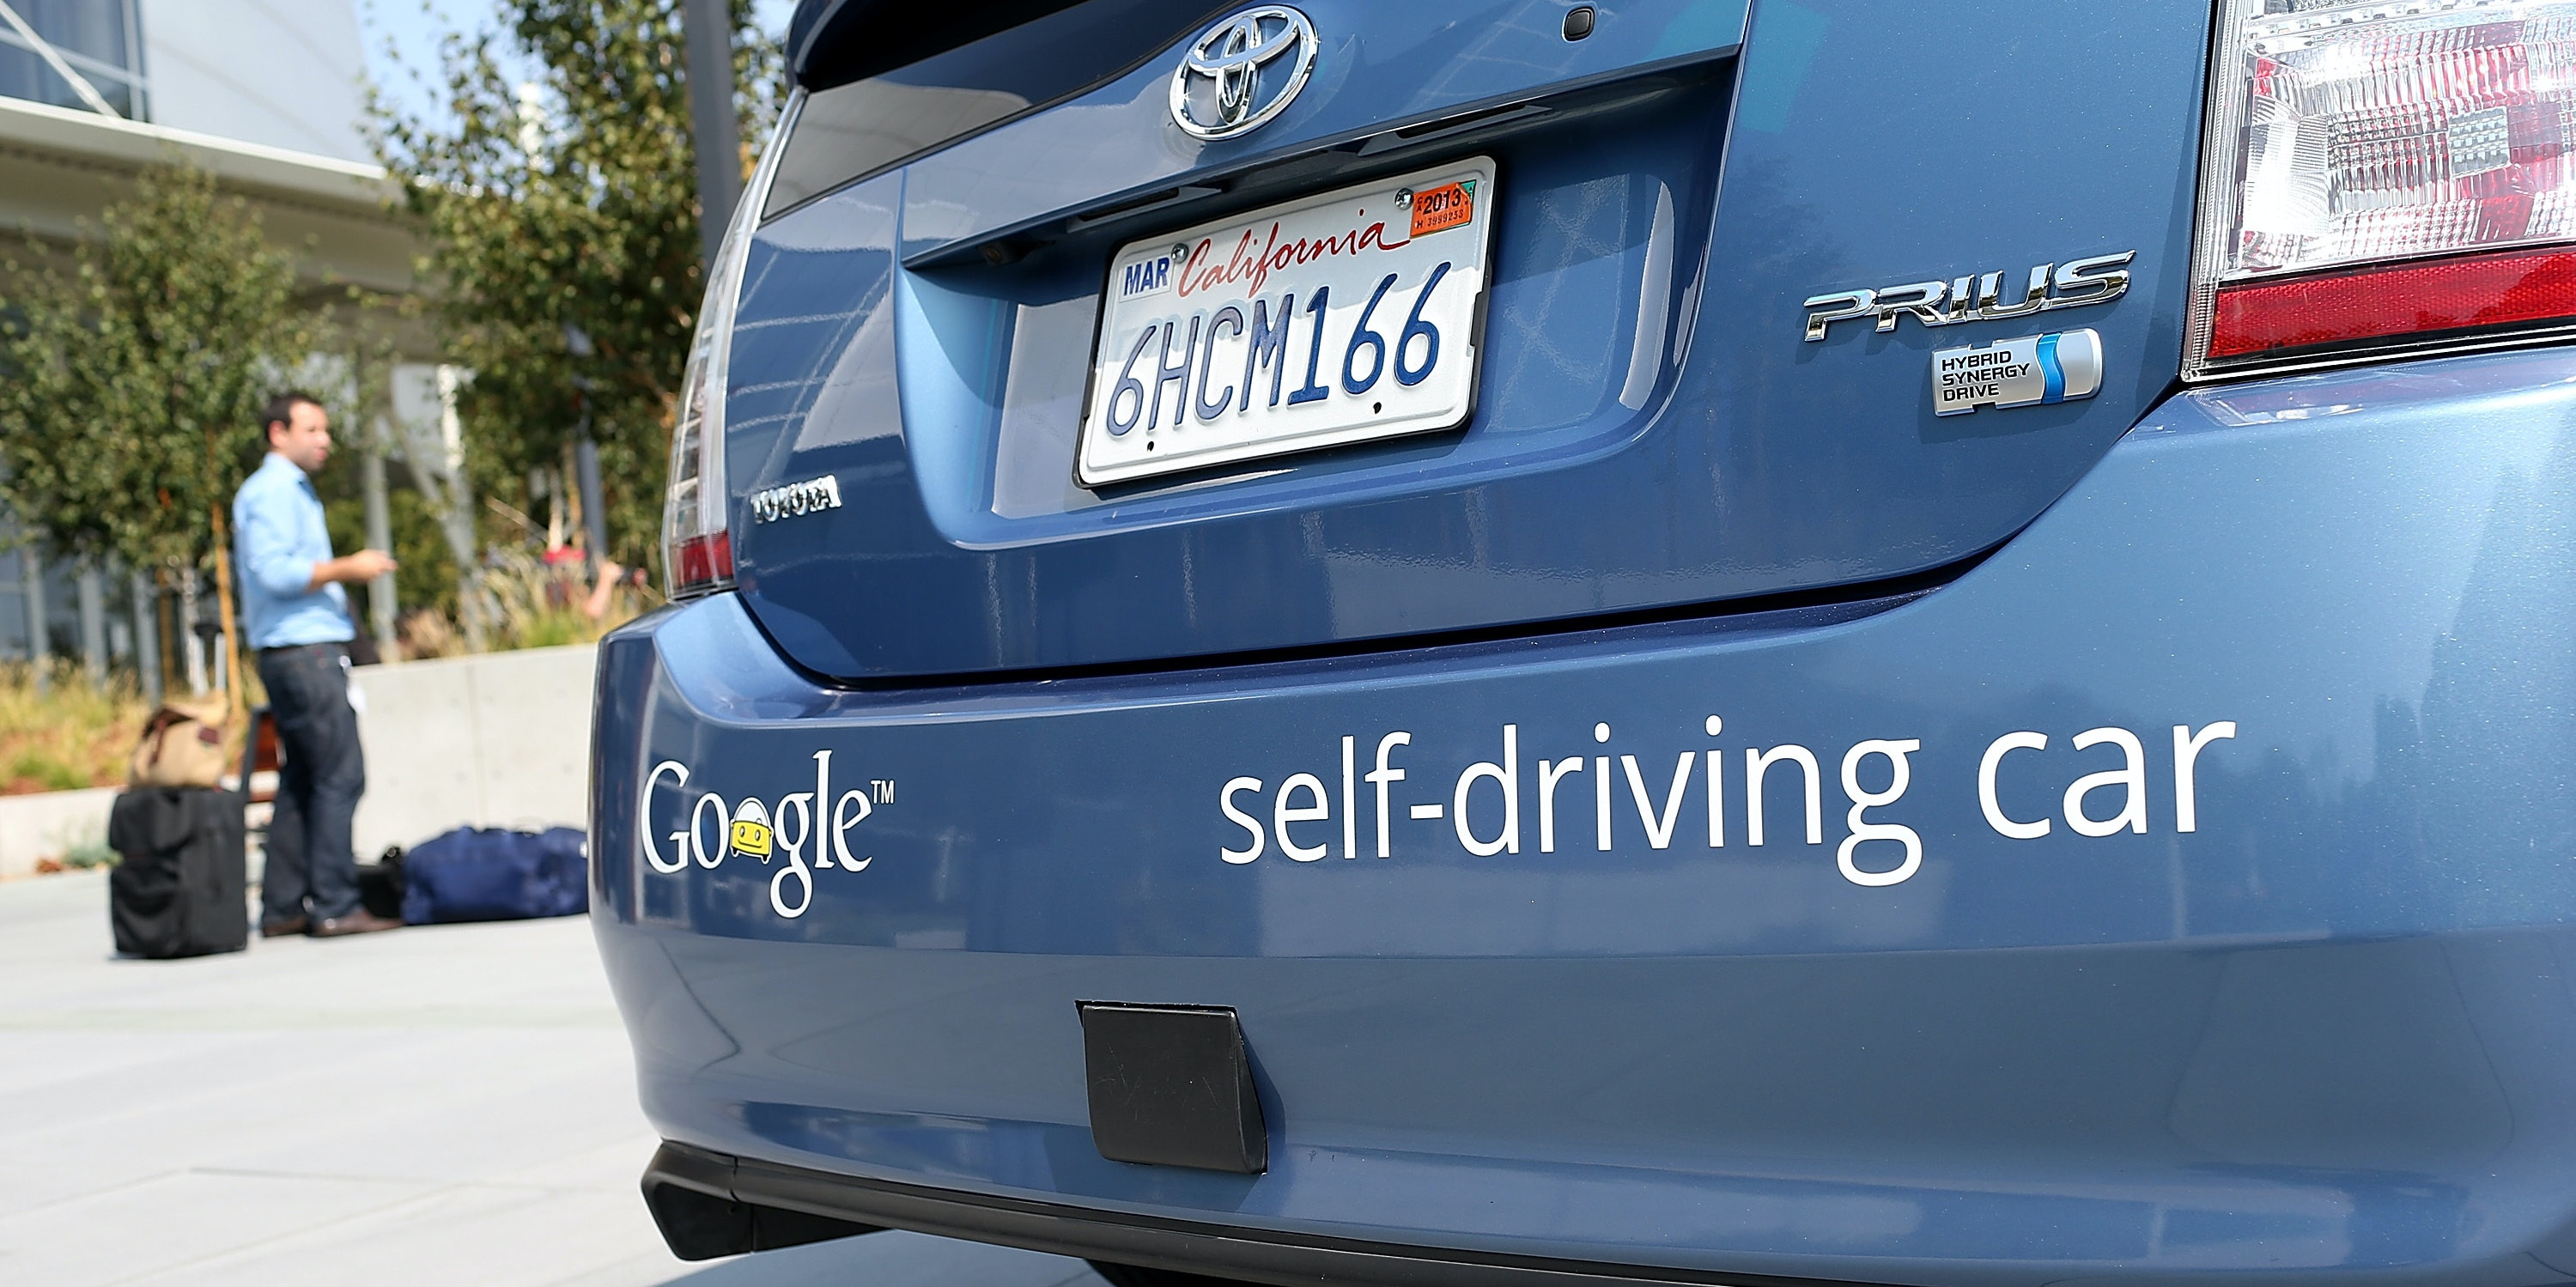 A Google self-driving car is displayed at the Google headquarters on September 25, 2012 in Mountain View, California. California Gov. Jerry Brown signed State Senate Bill 1298 that allows driverless cars to operate on public roads for testing purposes. The bill also calls for the Department of Motor Vehicles to adopt regulations that govern licensing, bonding, testing and operation of the driverless vehicles before January 2015.